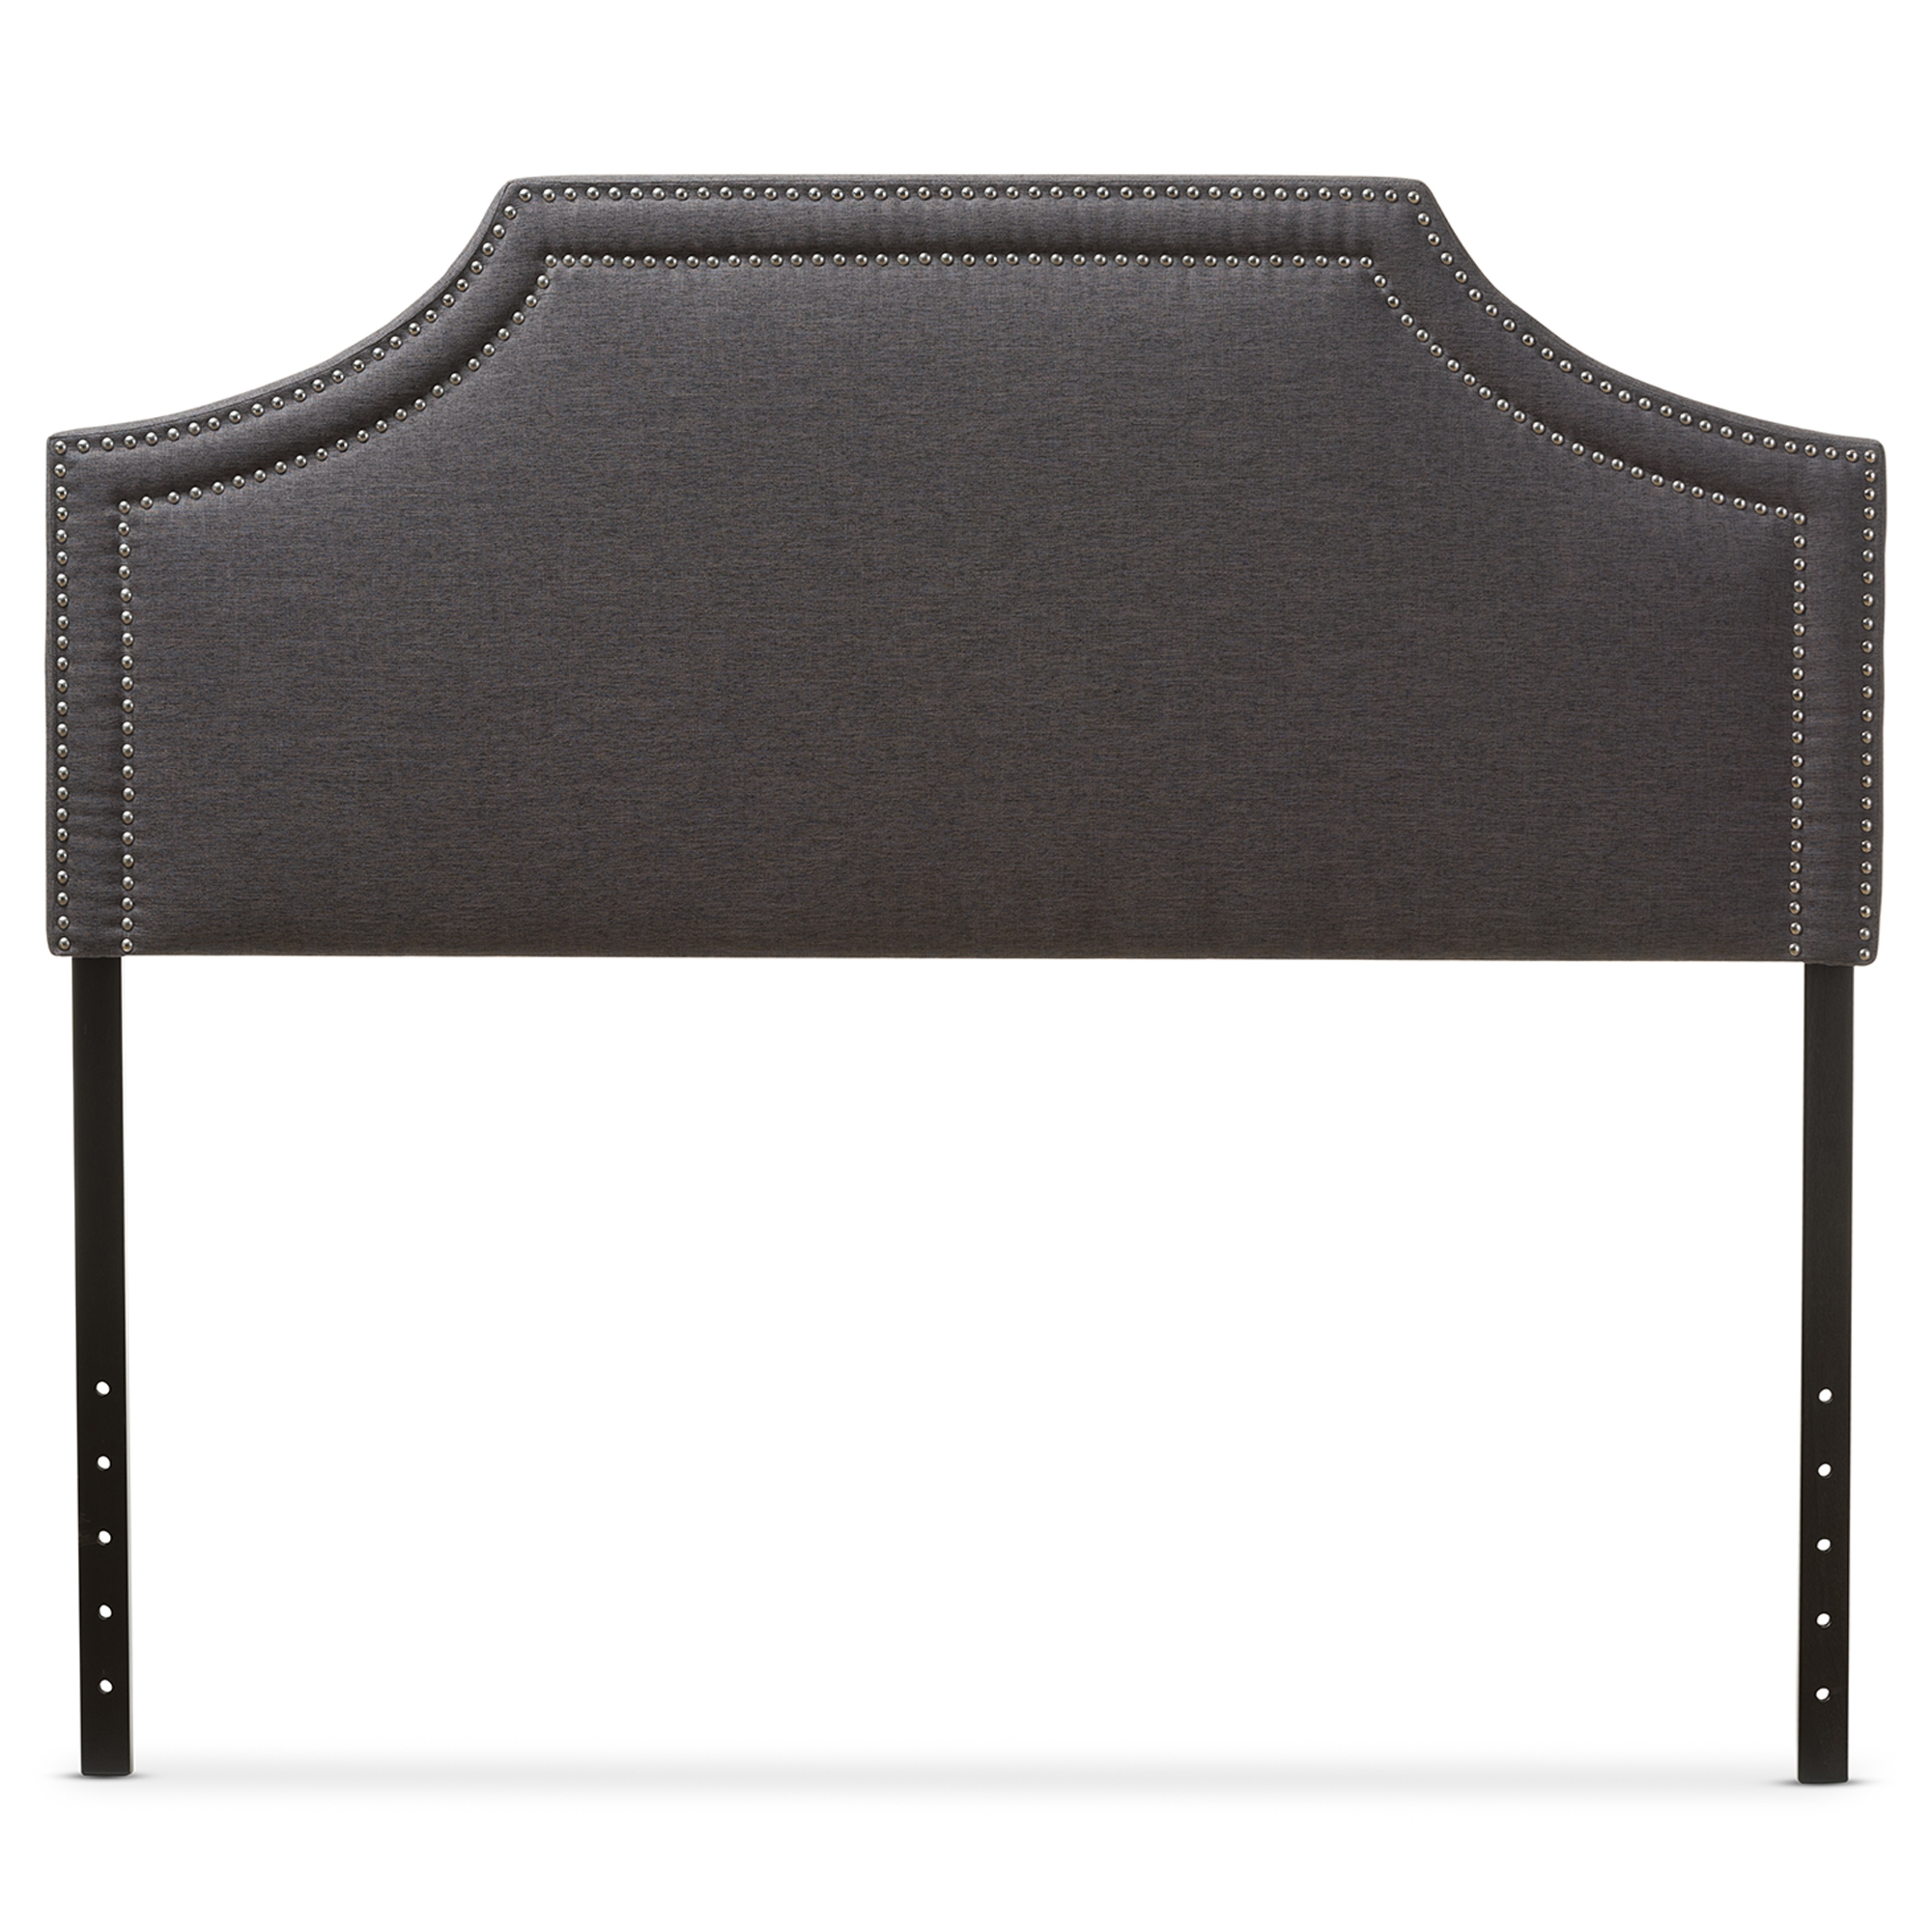 Incroyable Baxton Studio Avignon Modern And Contemporary Dark Grey Fabric Upholstered  Full Size Headboard